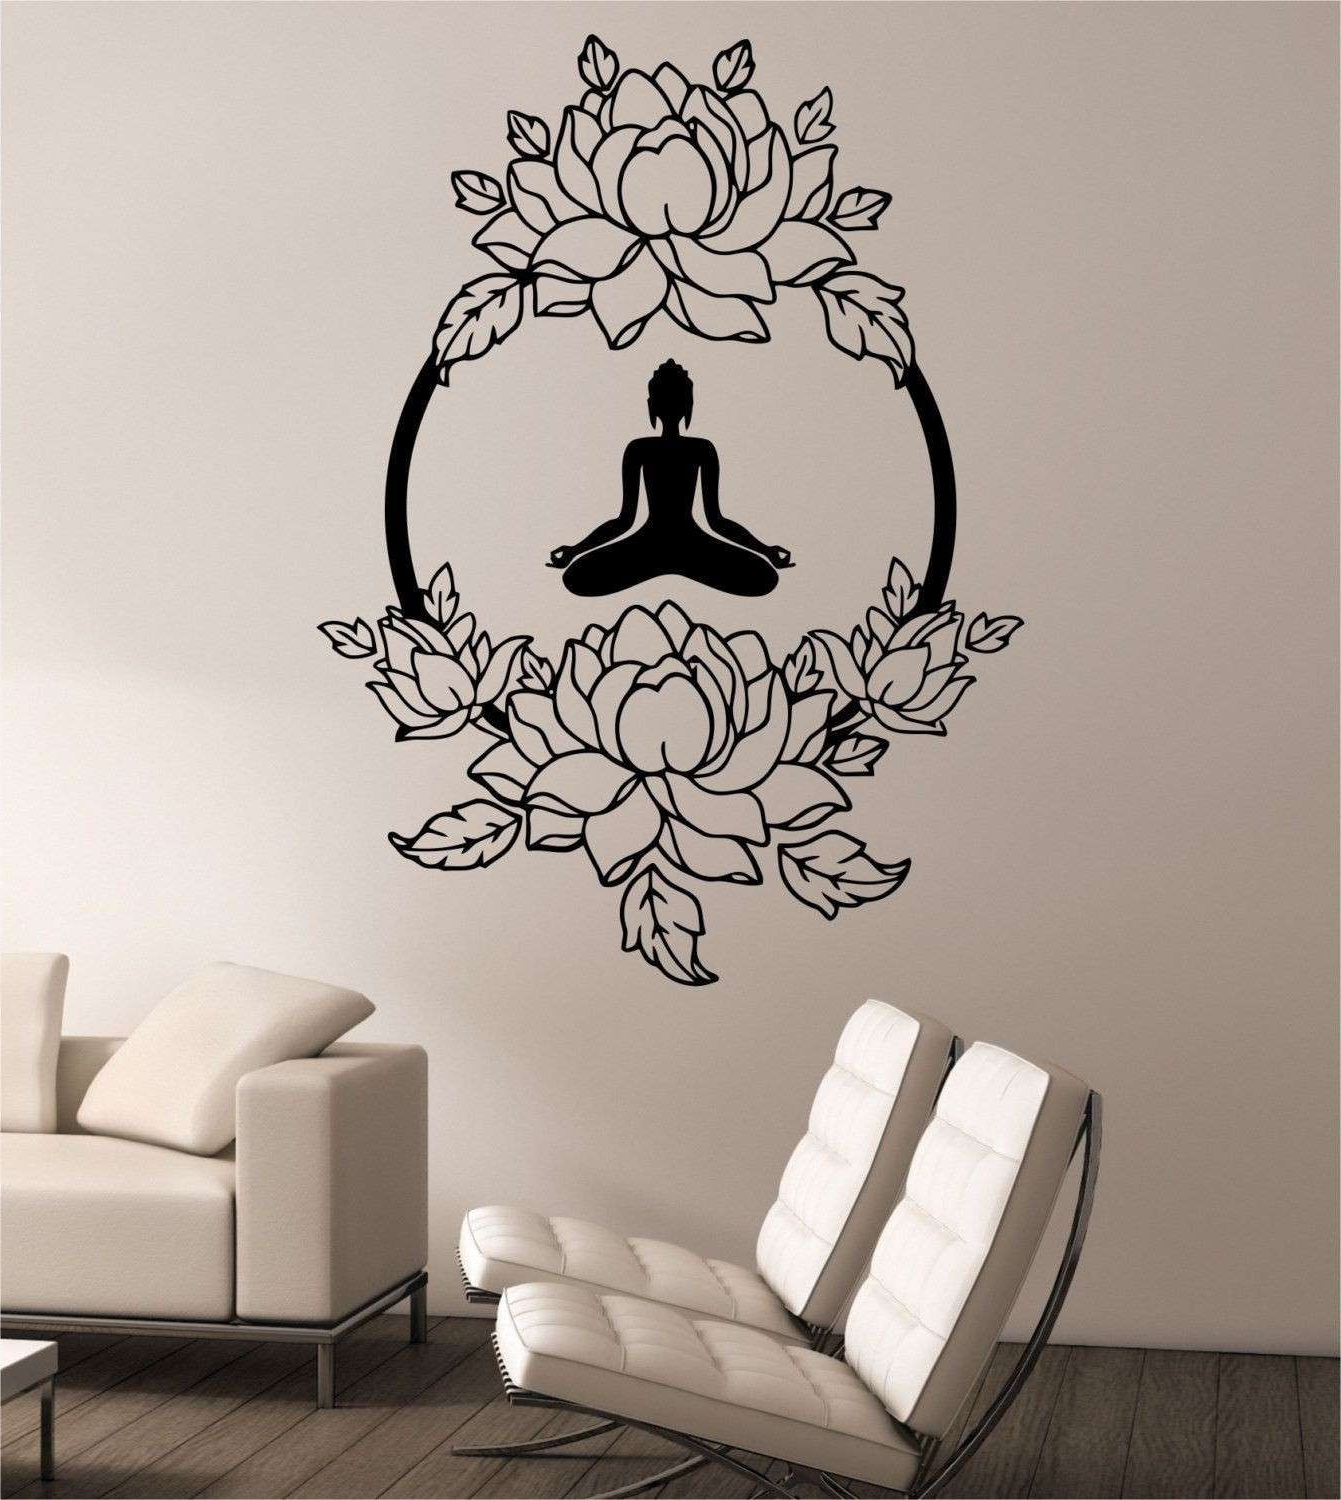 Most Recent Cool Wall Art With Cool Wall Art For Bedroom Fresh Wall Decal Luxury 1 Kirkland Wall (View 9 of 15)